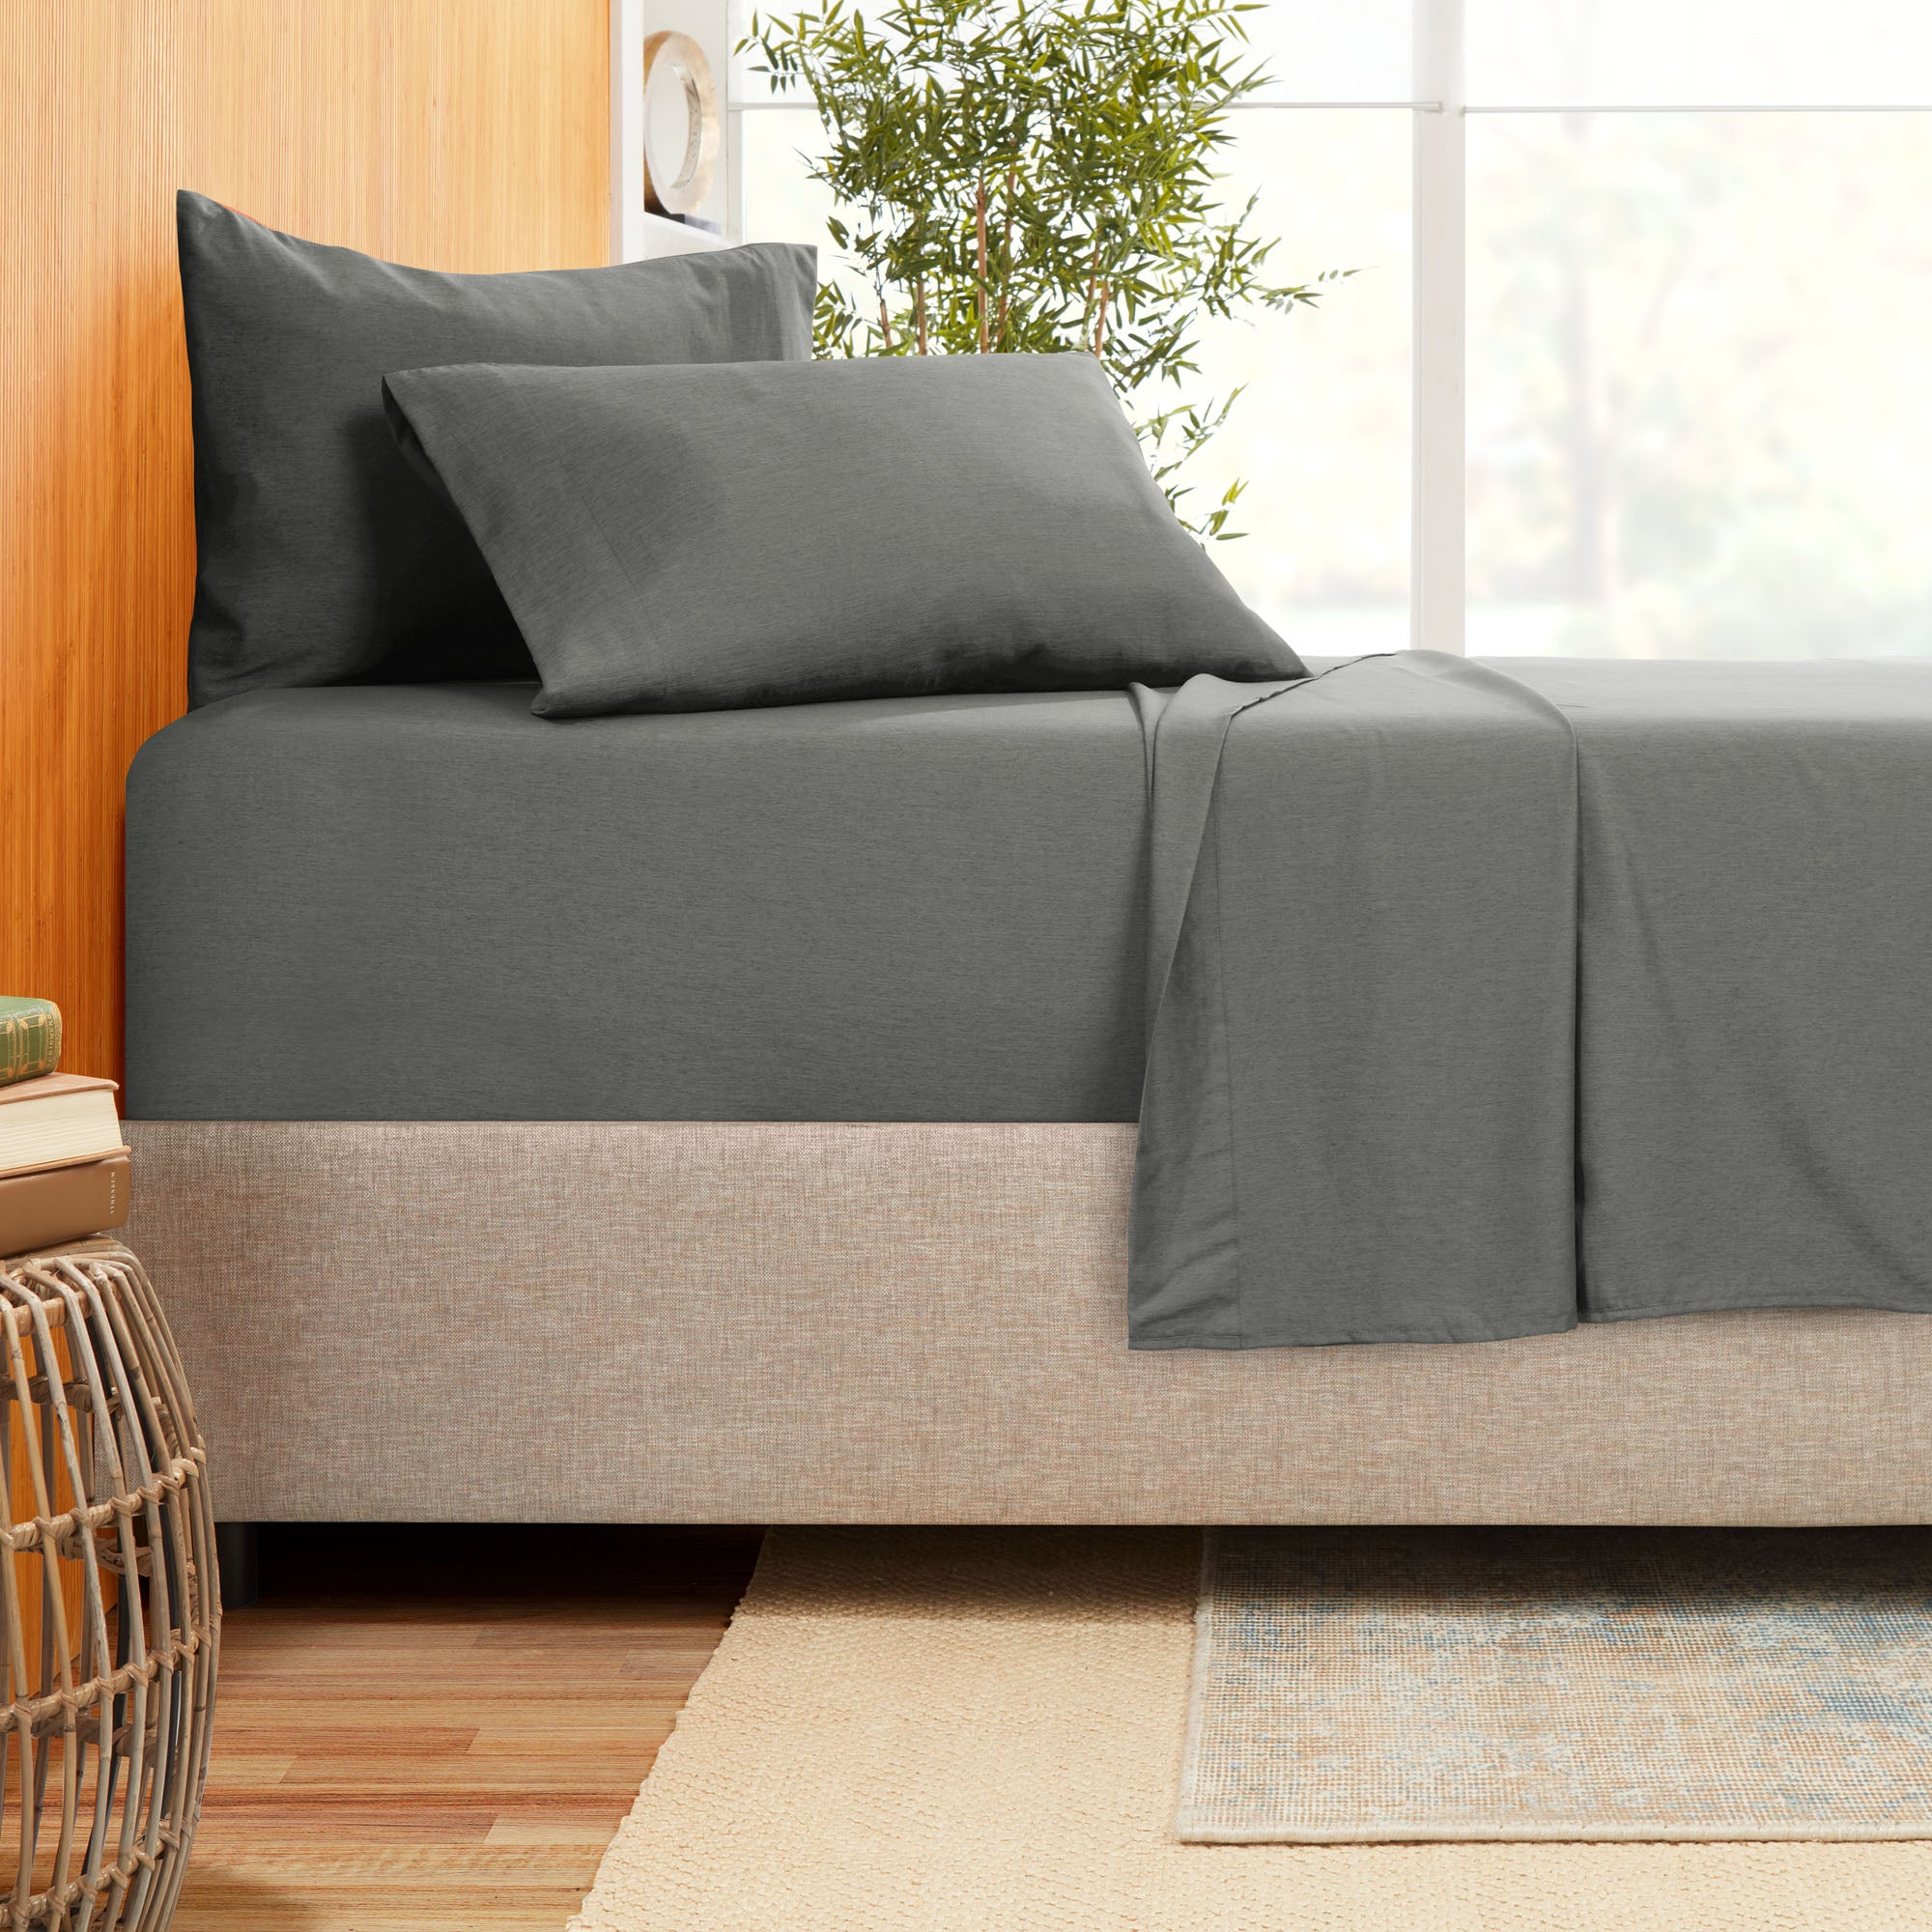 Bamboo Blend Hotel Luxury 4pc Bed Sheets - Extra Soft Bamboo and Microfiber Blend - Breathable & Cooling Sheets - Wrinkle Free - Comfy